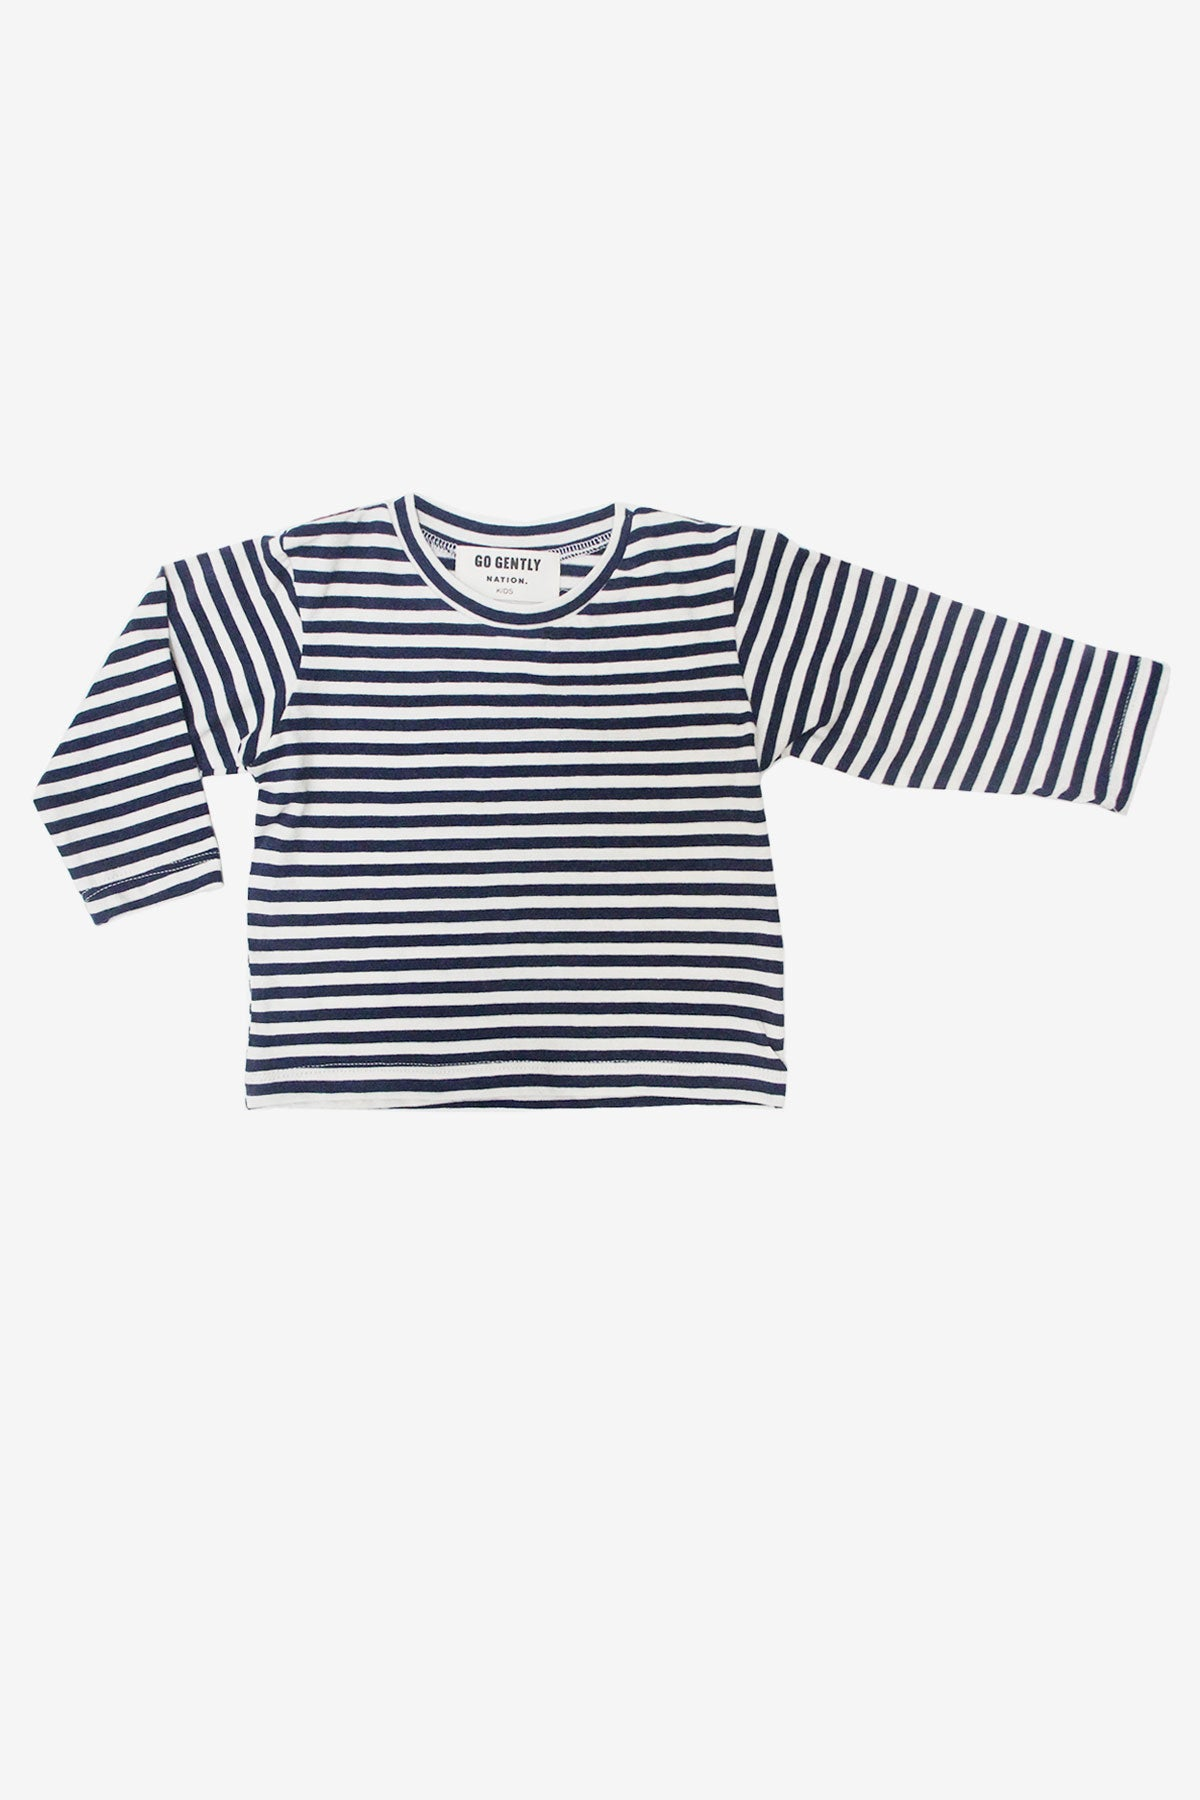 Go Gently Nation Navy Stripe Tee